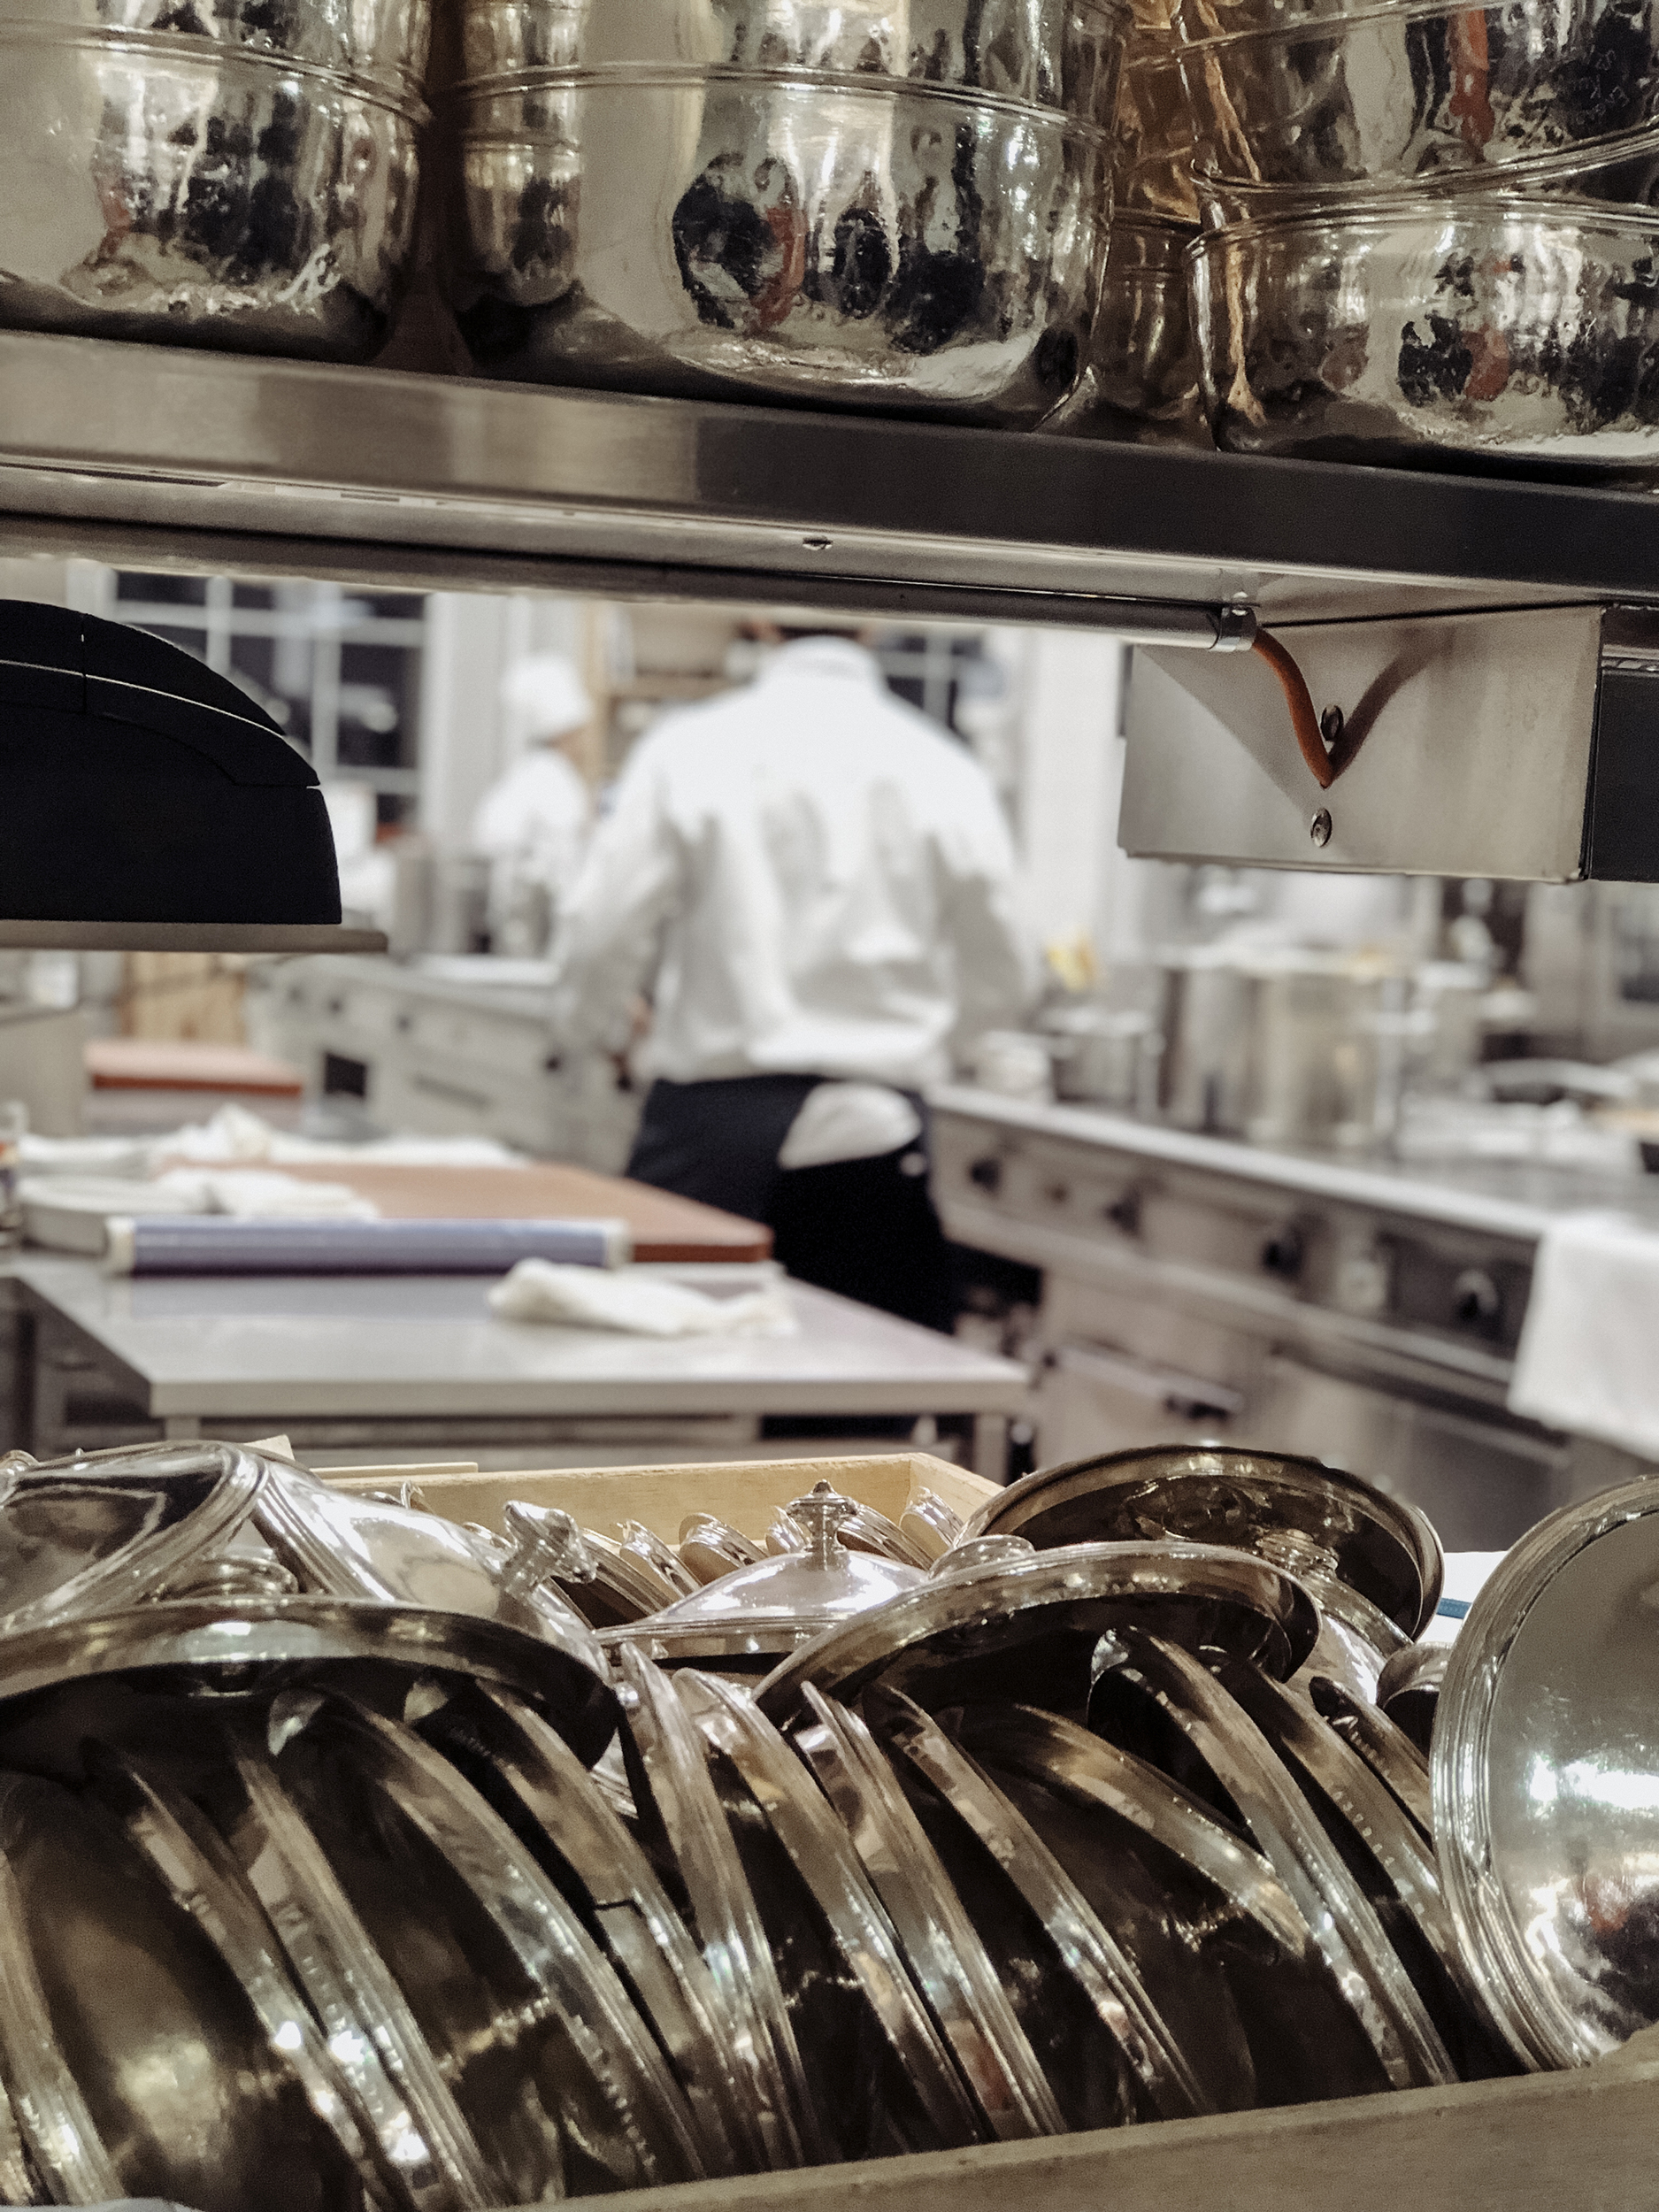 Inside the historic kitchen at Kulm Hotel